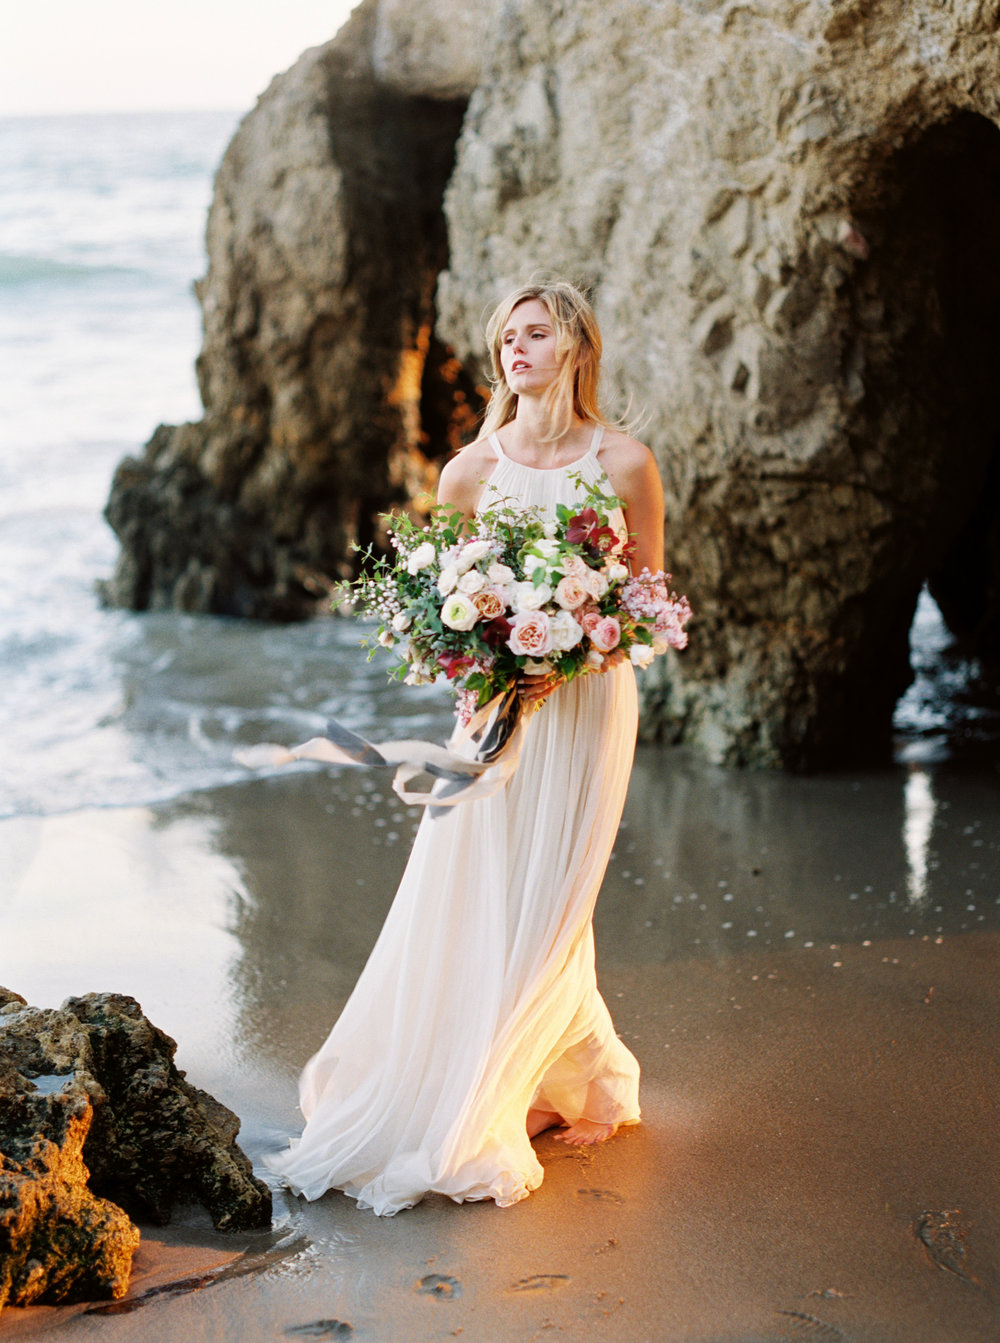 malibu_wedding_bride-71.jpg